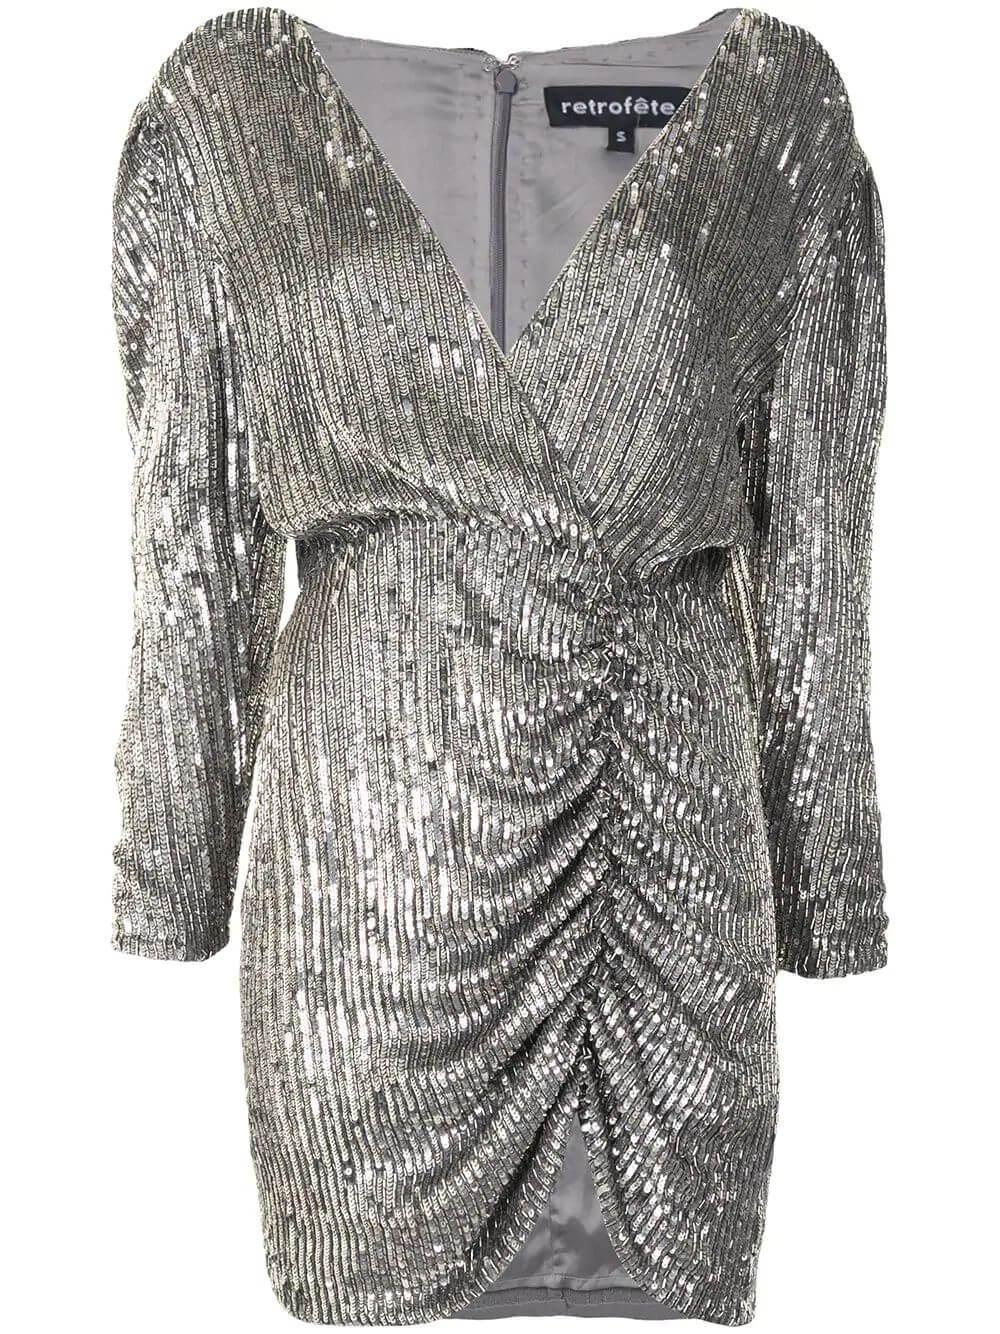 Sequin- Embellished Fitted Dress Item # FW20-2889